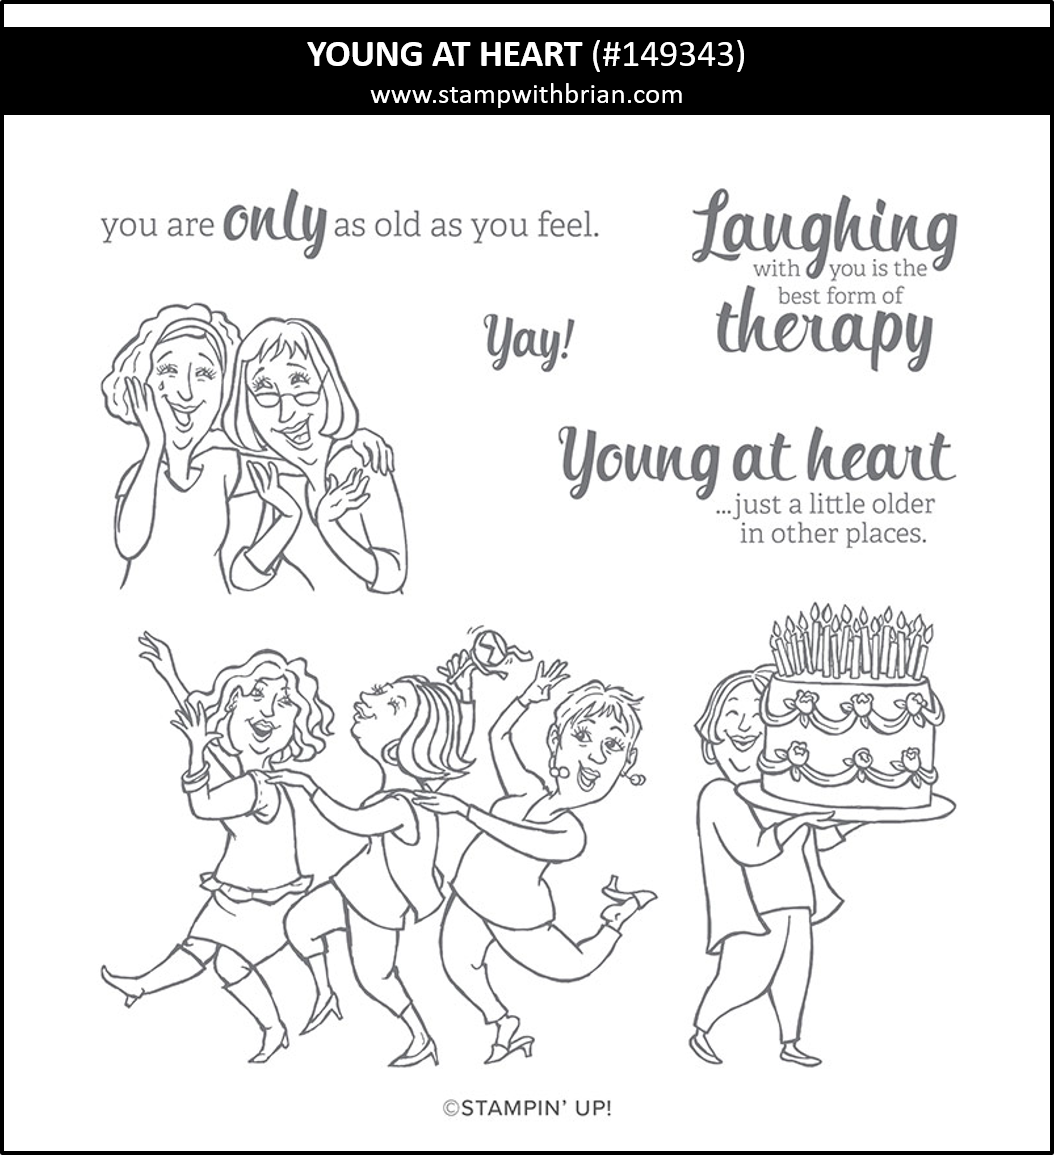 Young at Heart, Stampin' Up! 149343